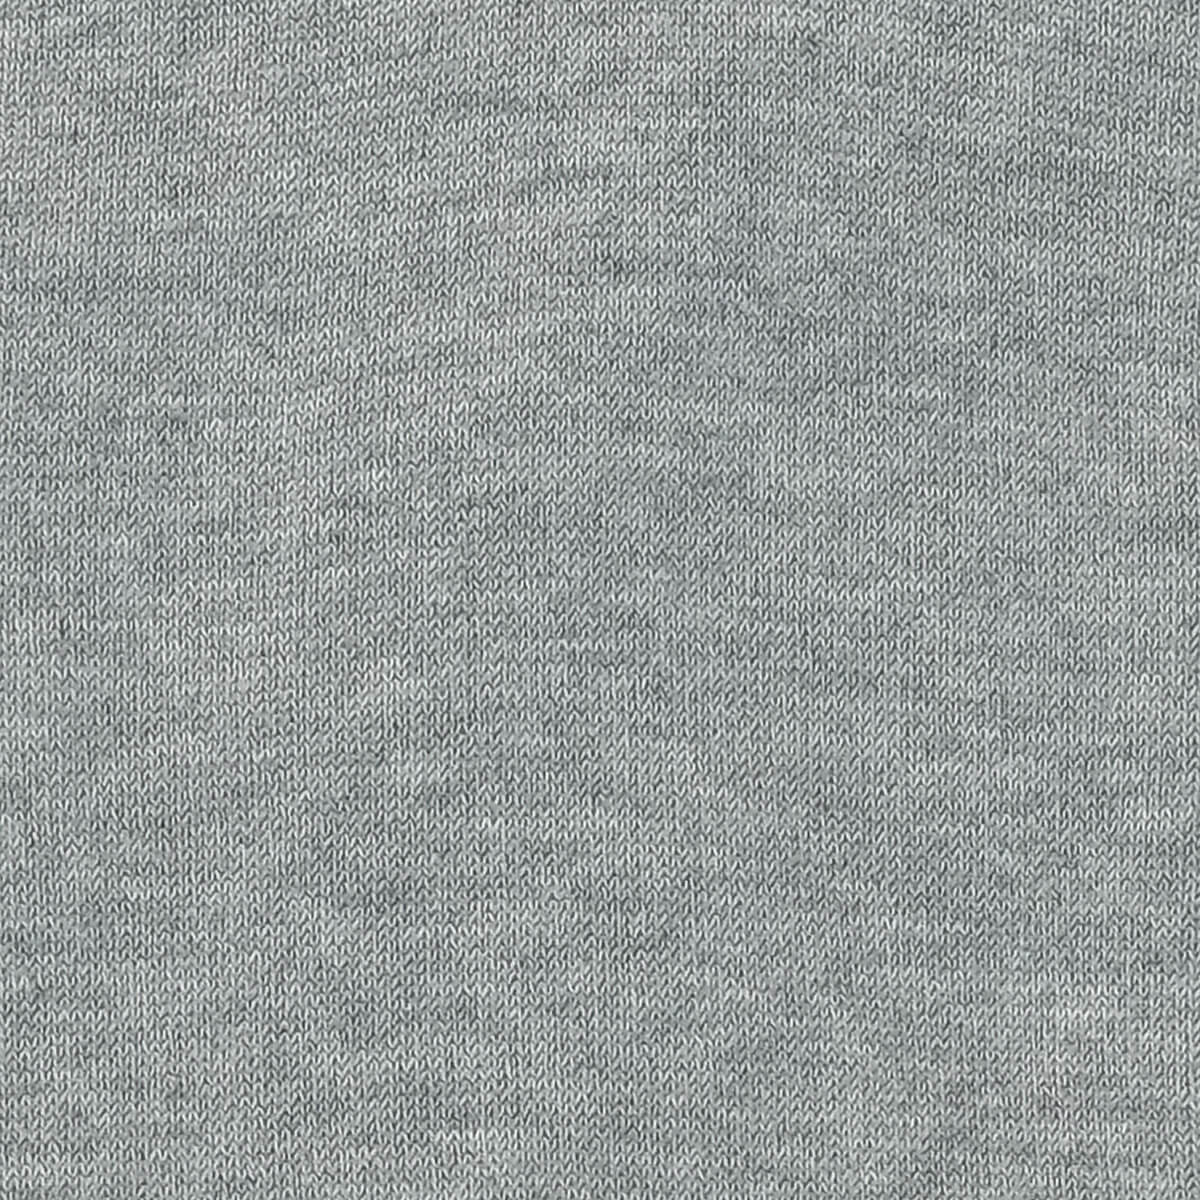 Basic Luxuries - Light Grey - Mens Socks | Etiquette Clothiers Global Official